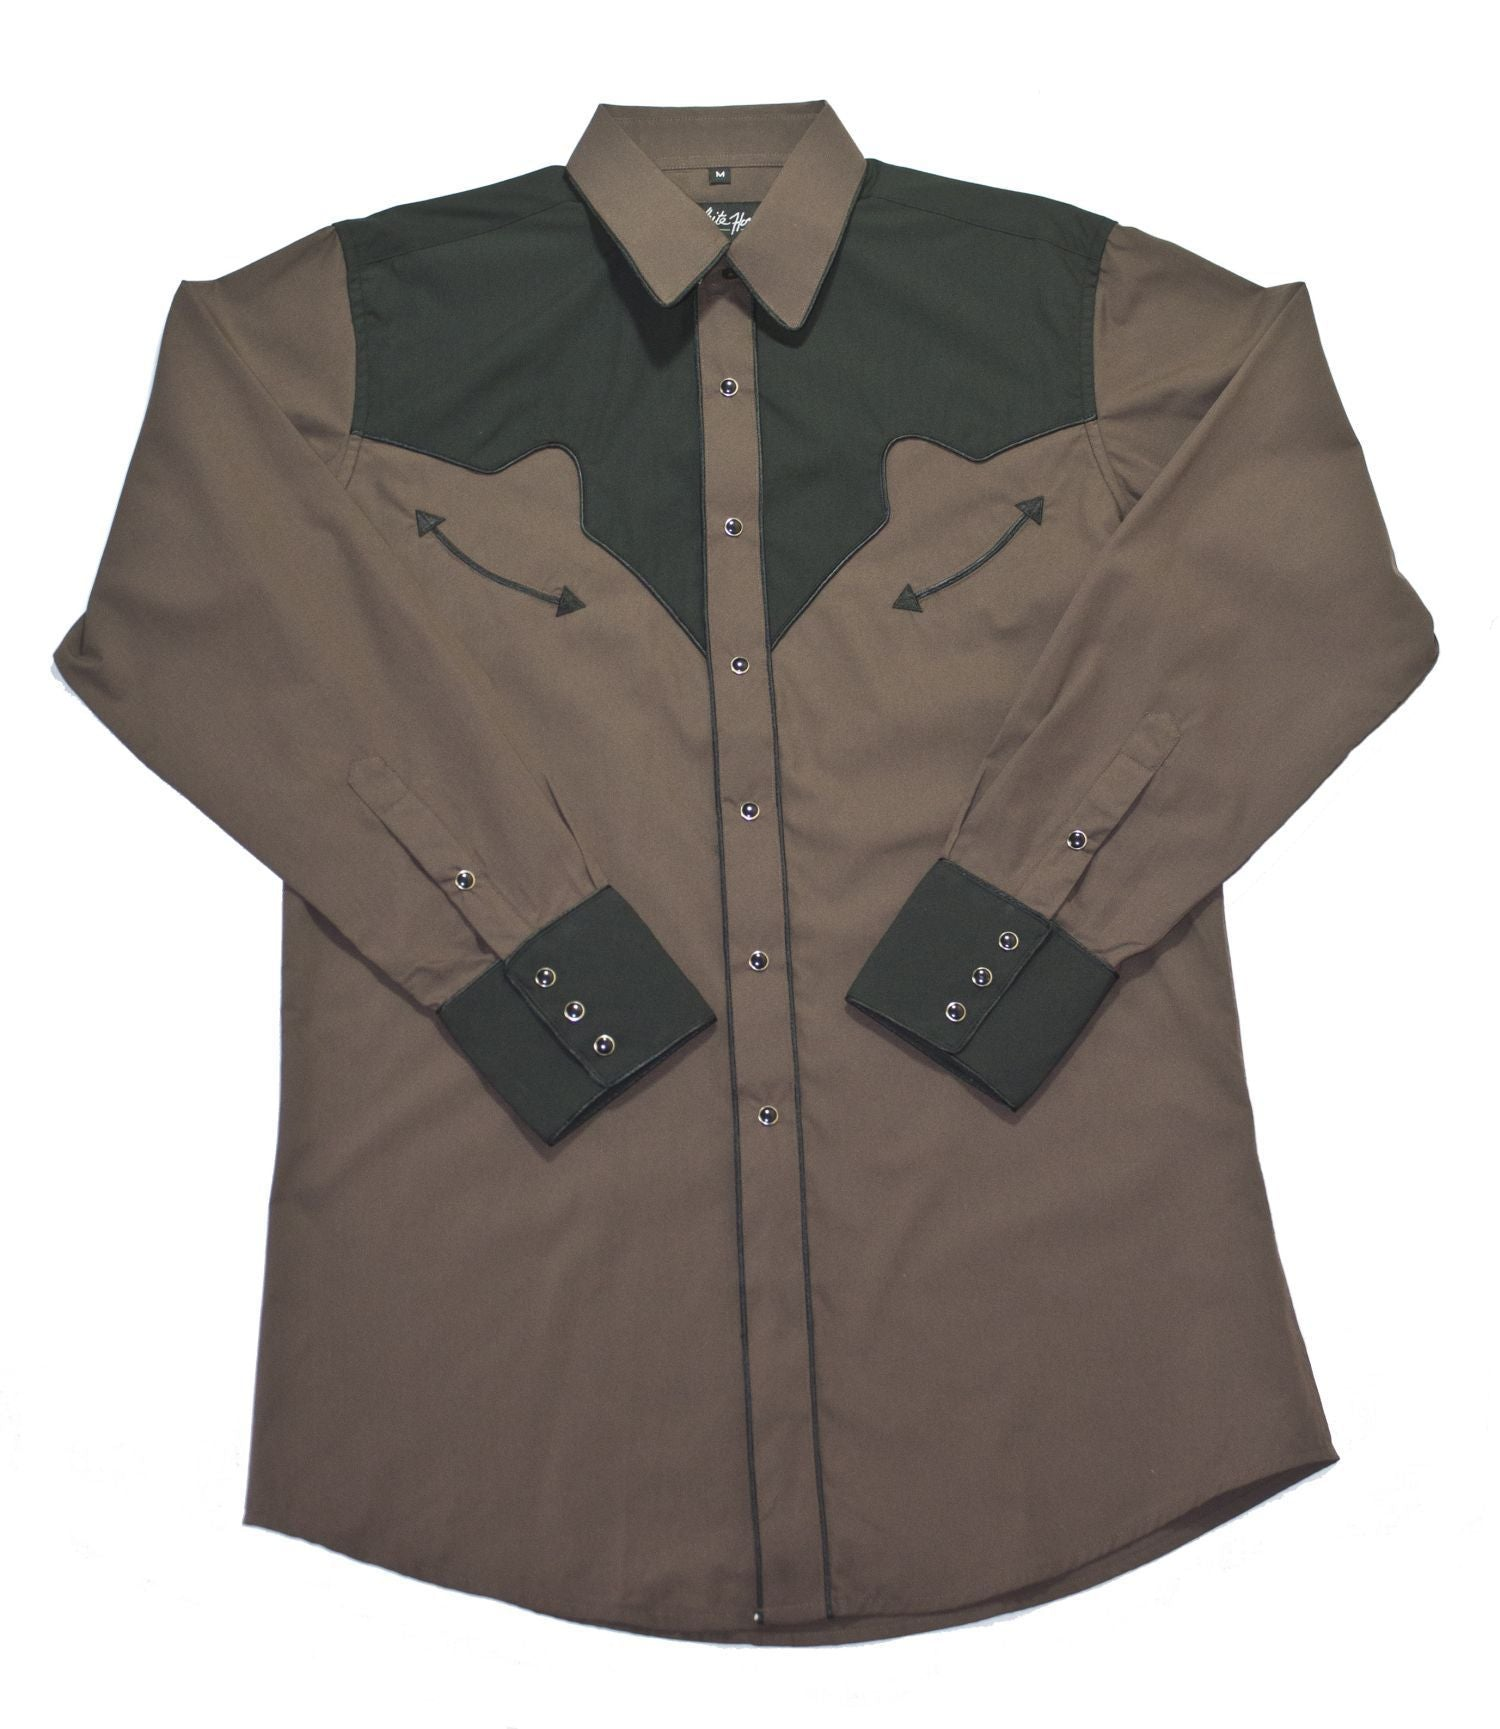 White Horse Men's Brown/Black Yoke & Cuff Shirt